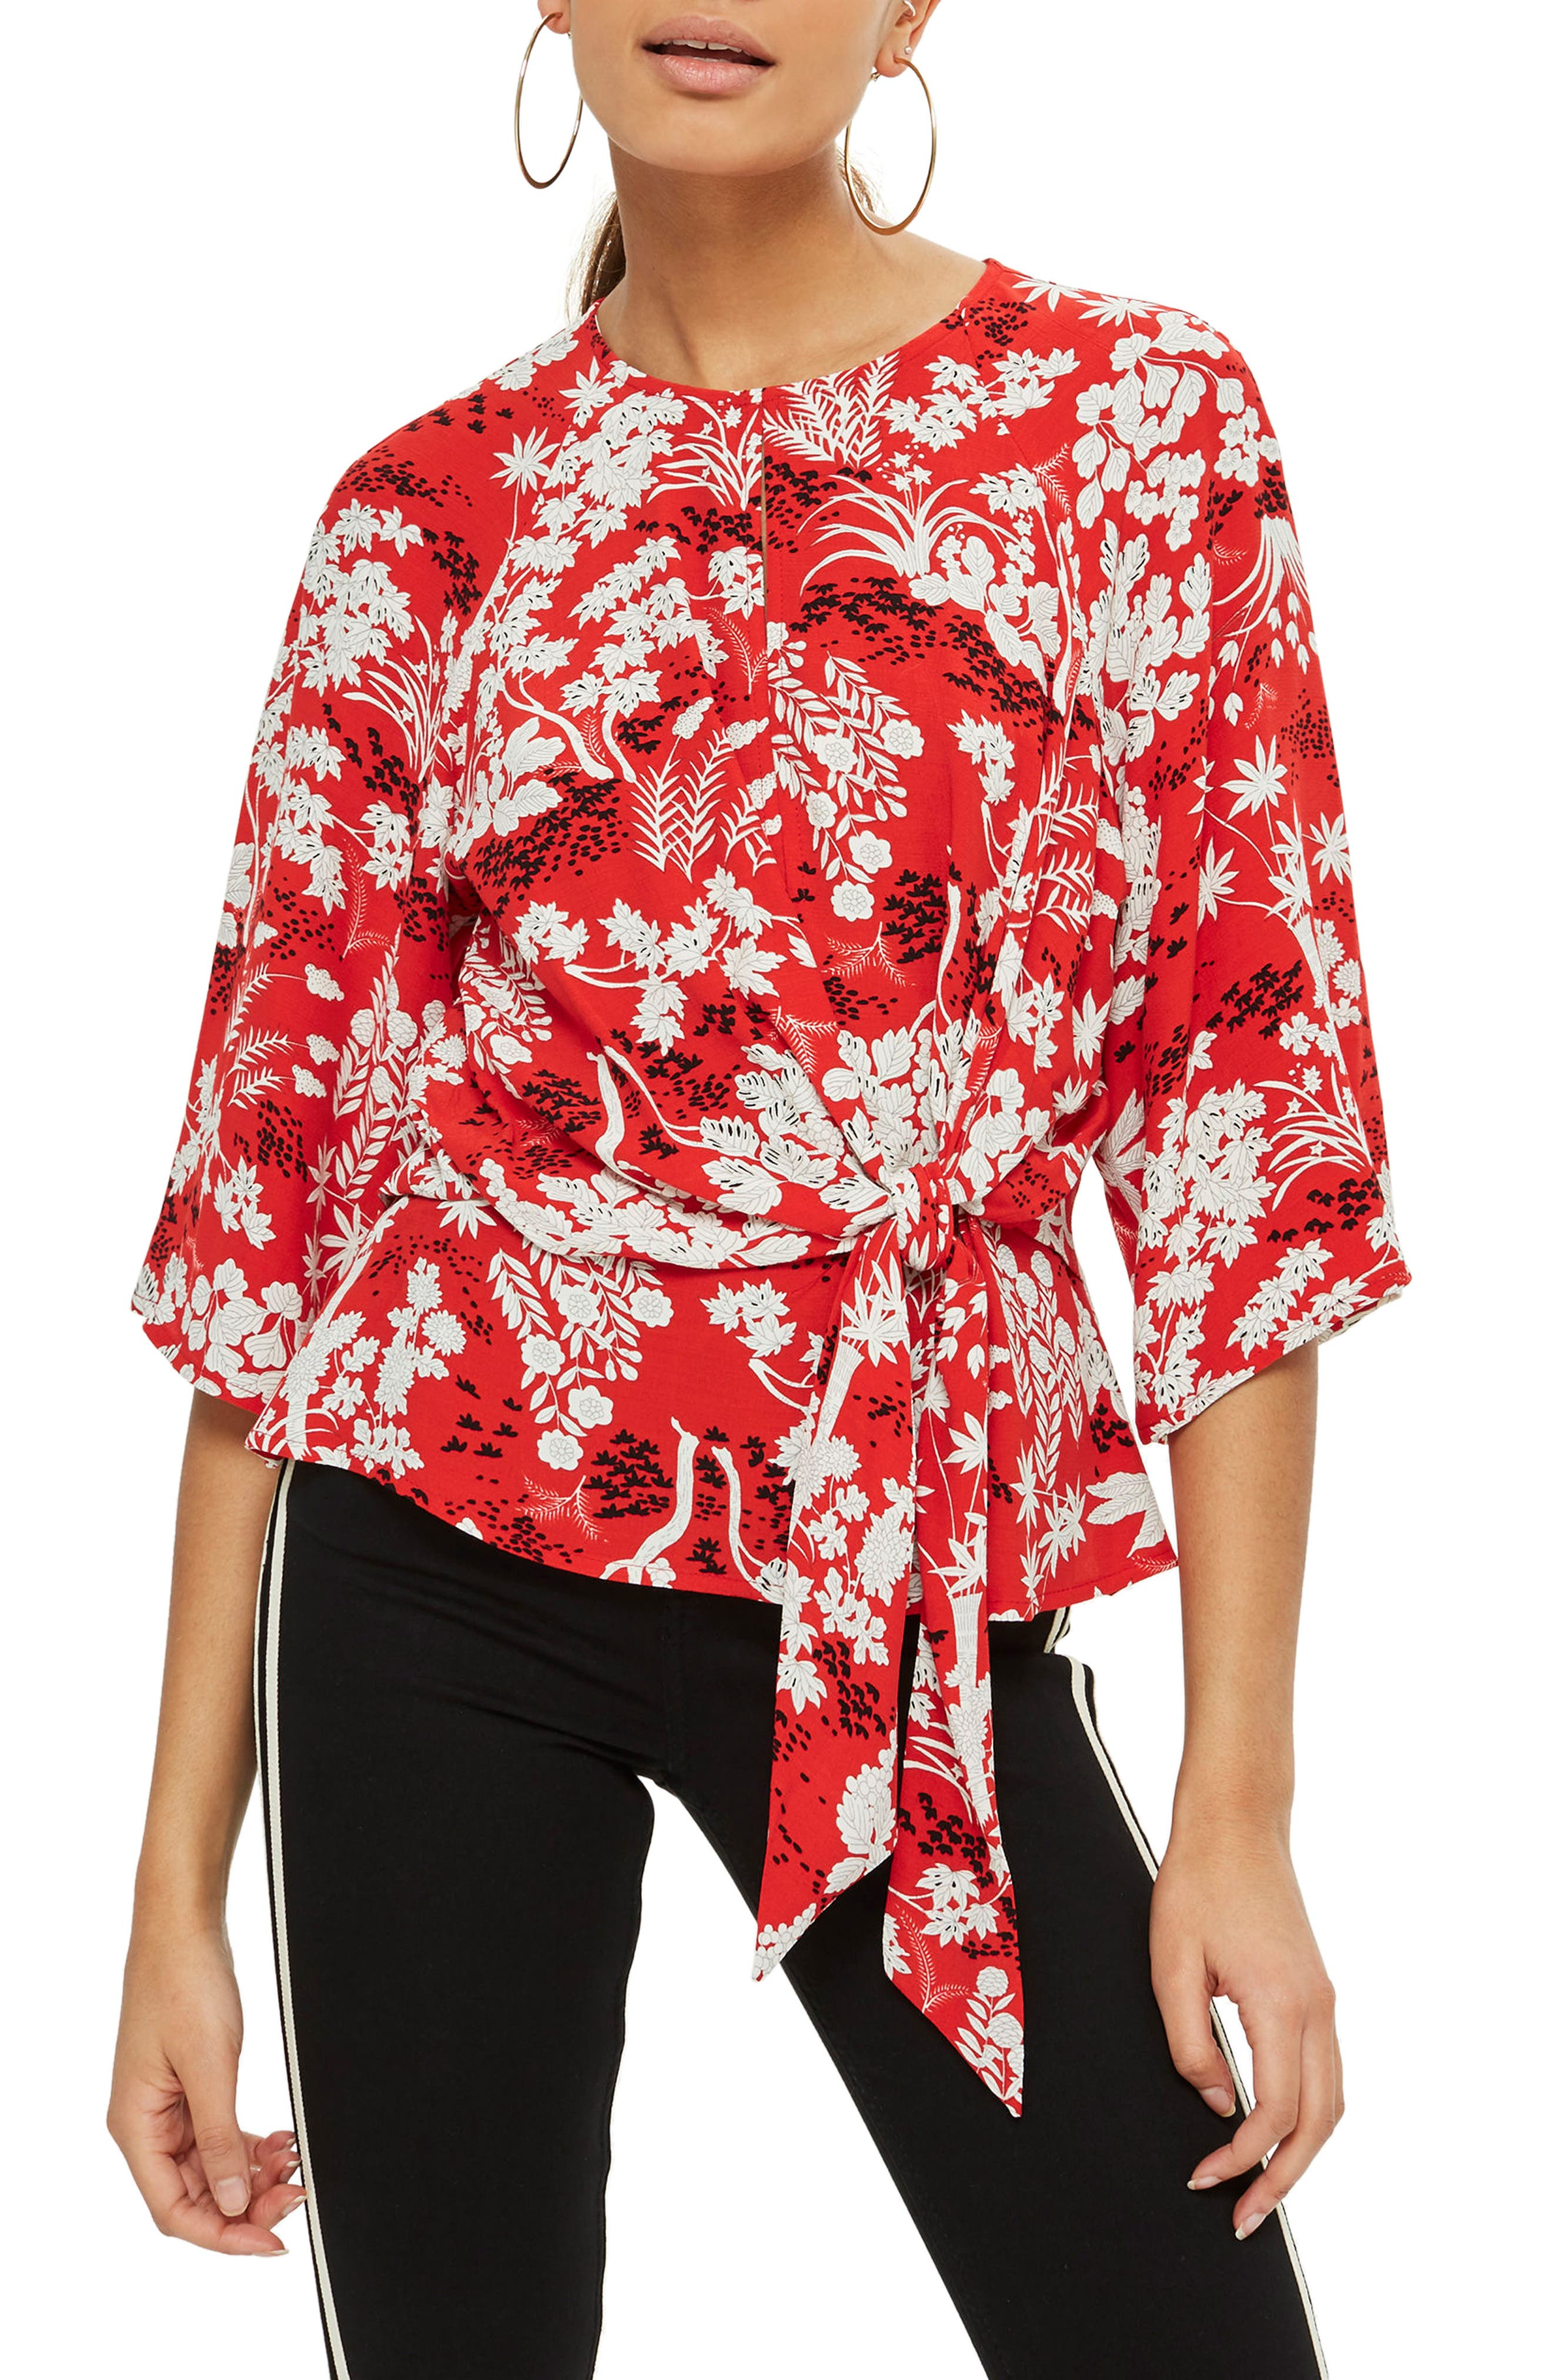 Fern Knot Front Blouse,                             Main thumbnail 1, color,                             Red Multi